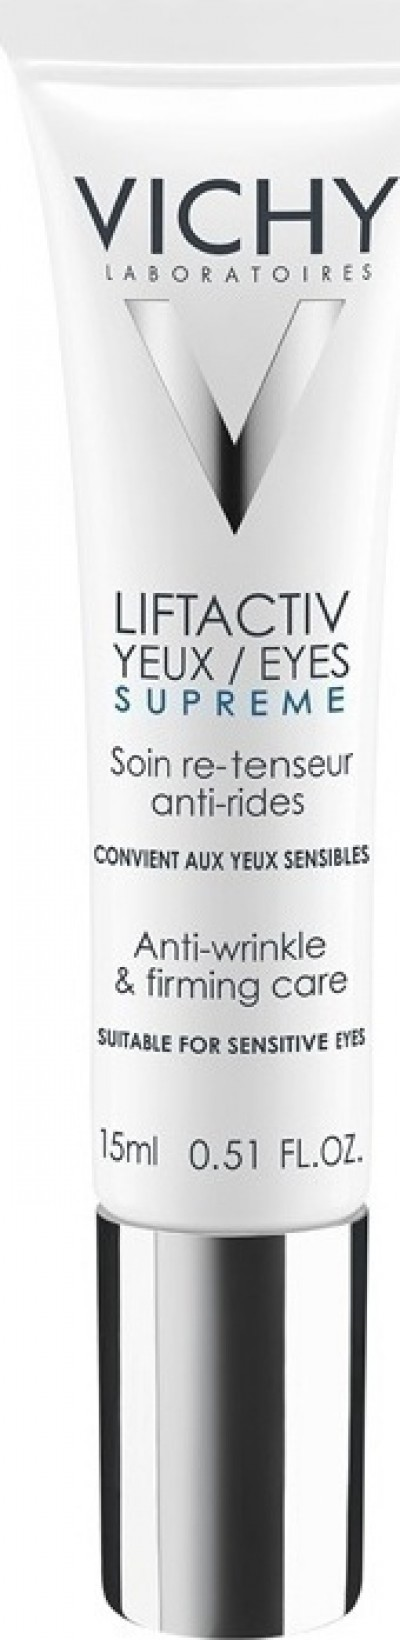 Vichy Liftactiv Supreme Yeux Anti-Wrinkle & Firming Care 15ml